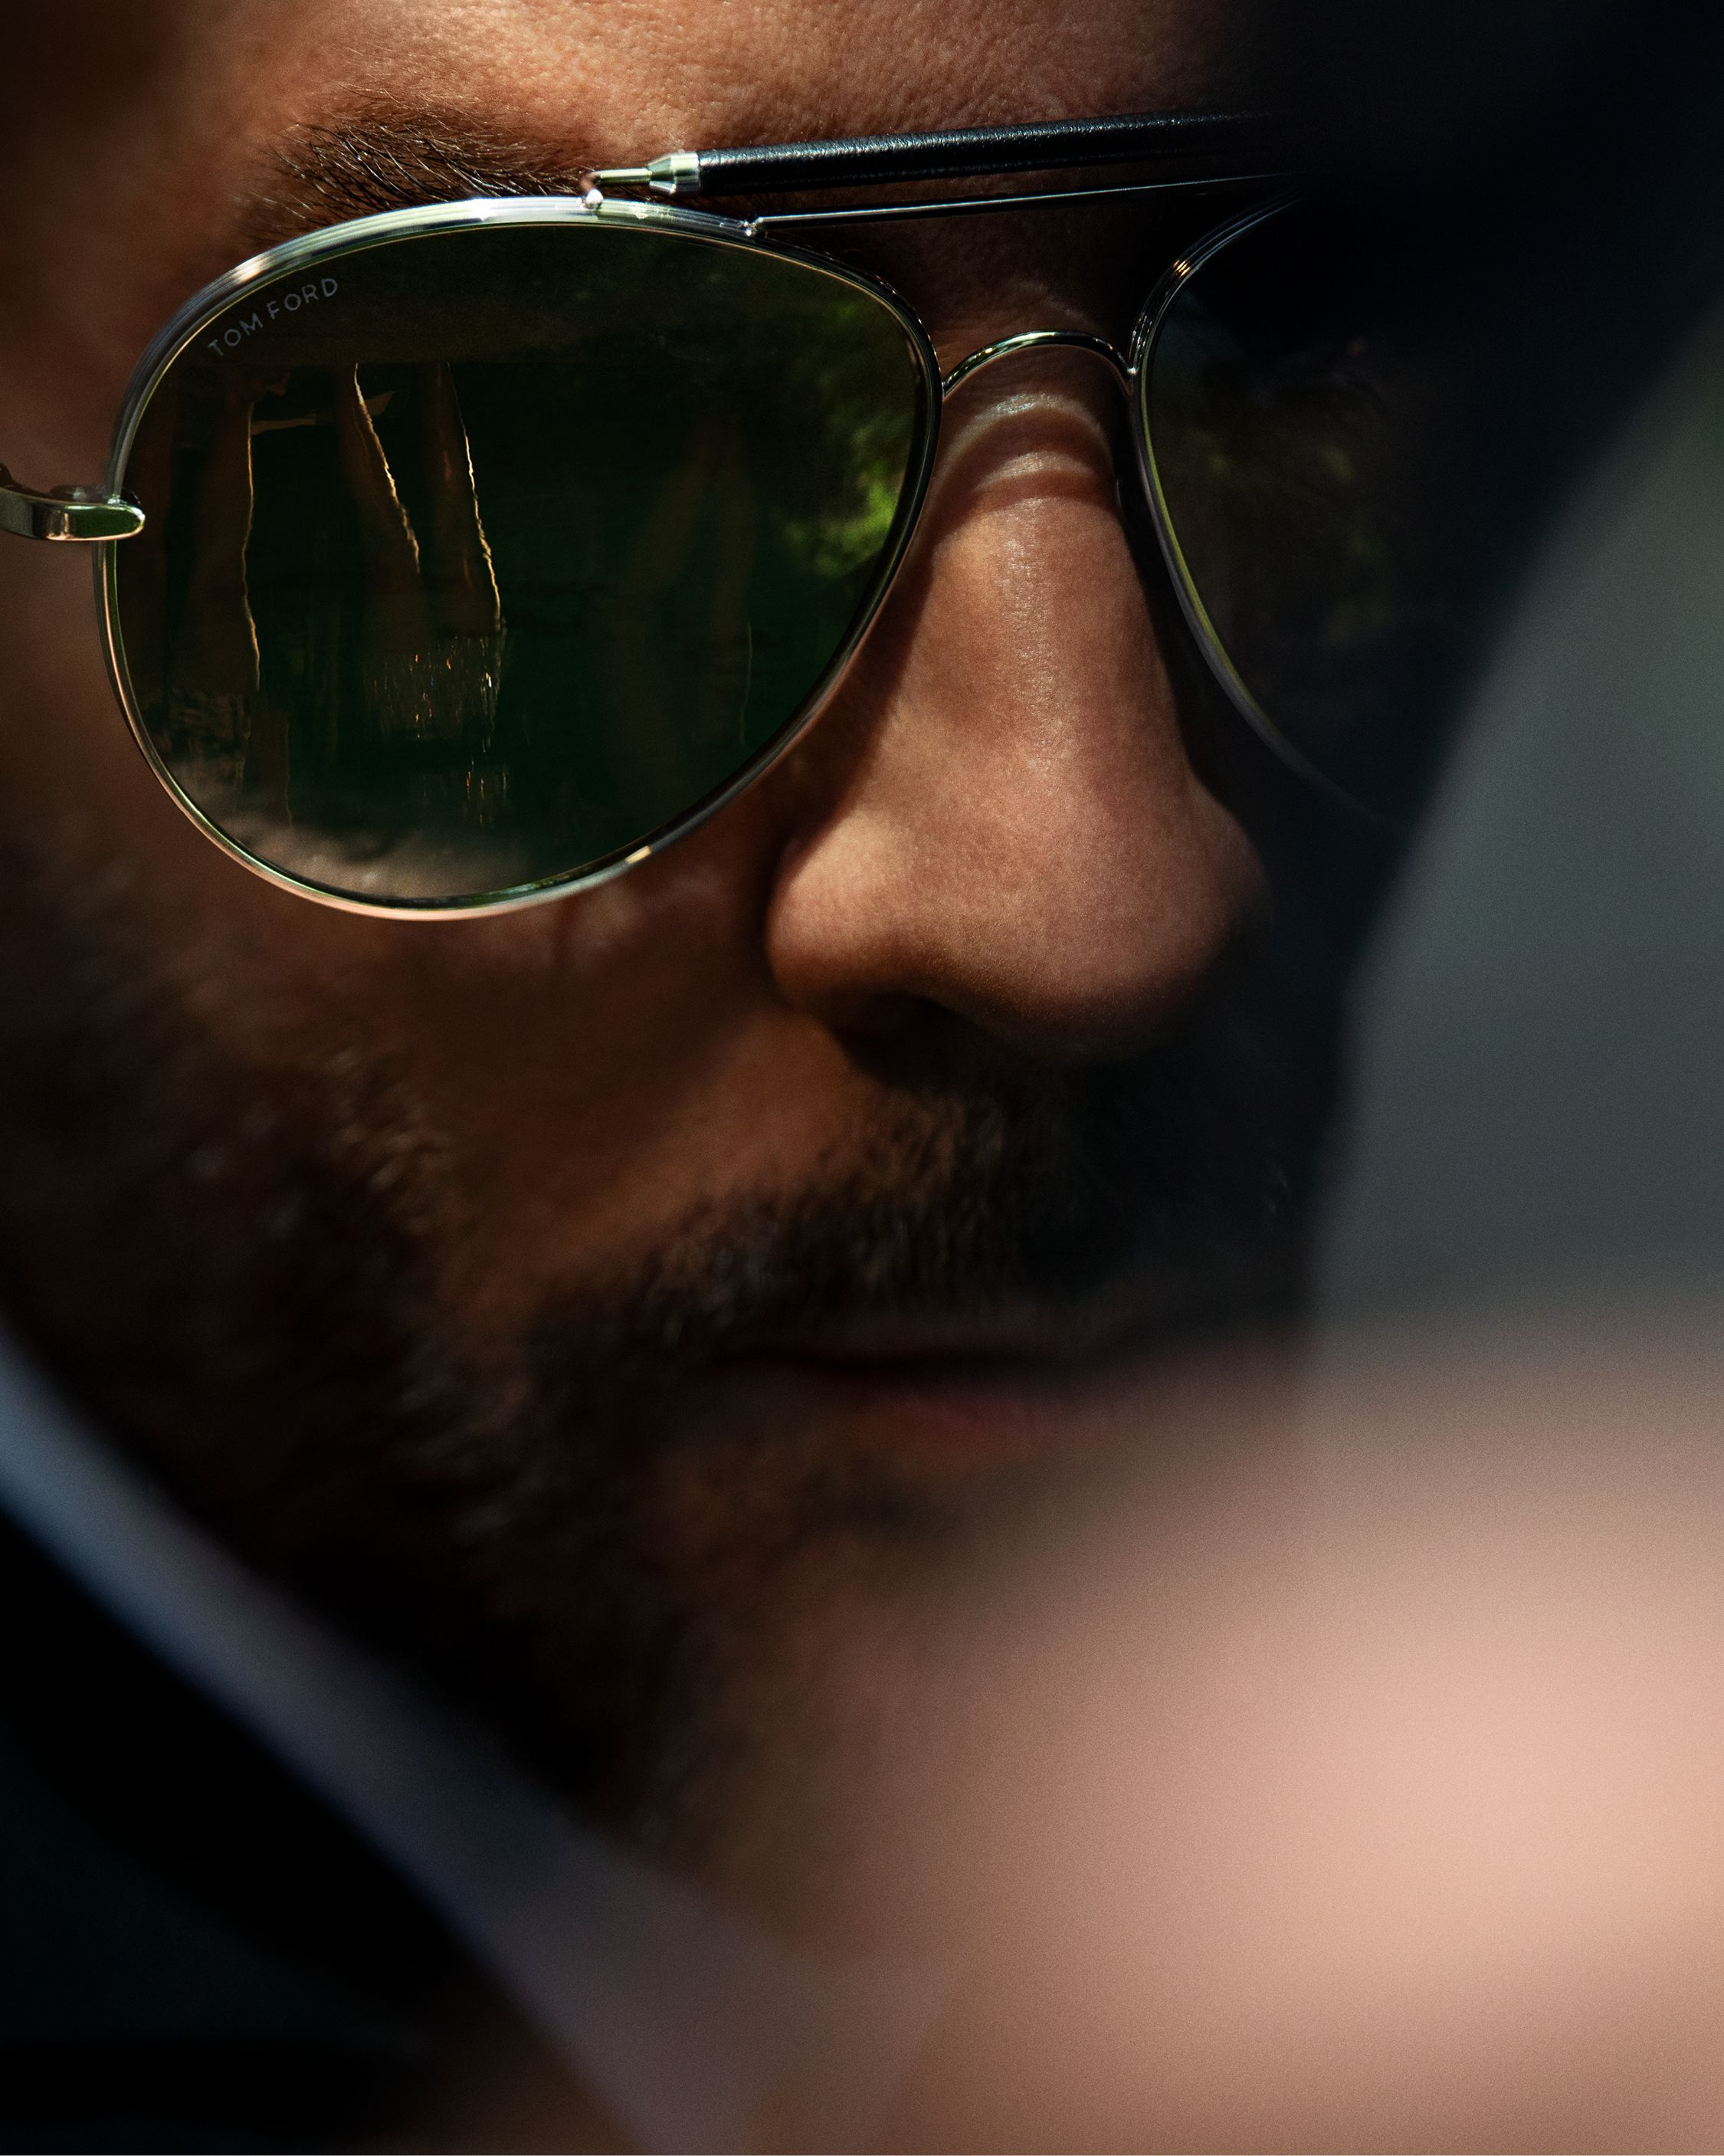 712e974193 Discover the exclusive TOM FORD Private Collection featuring 3 new styles of  Sunglasses and Optical Frames.  TOMFORD  TFPRIVATECOLLECTION